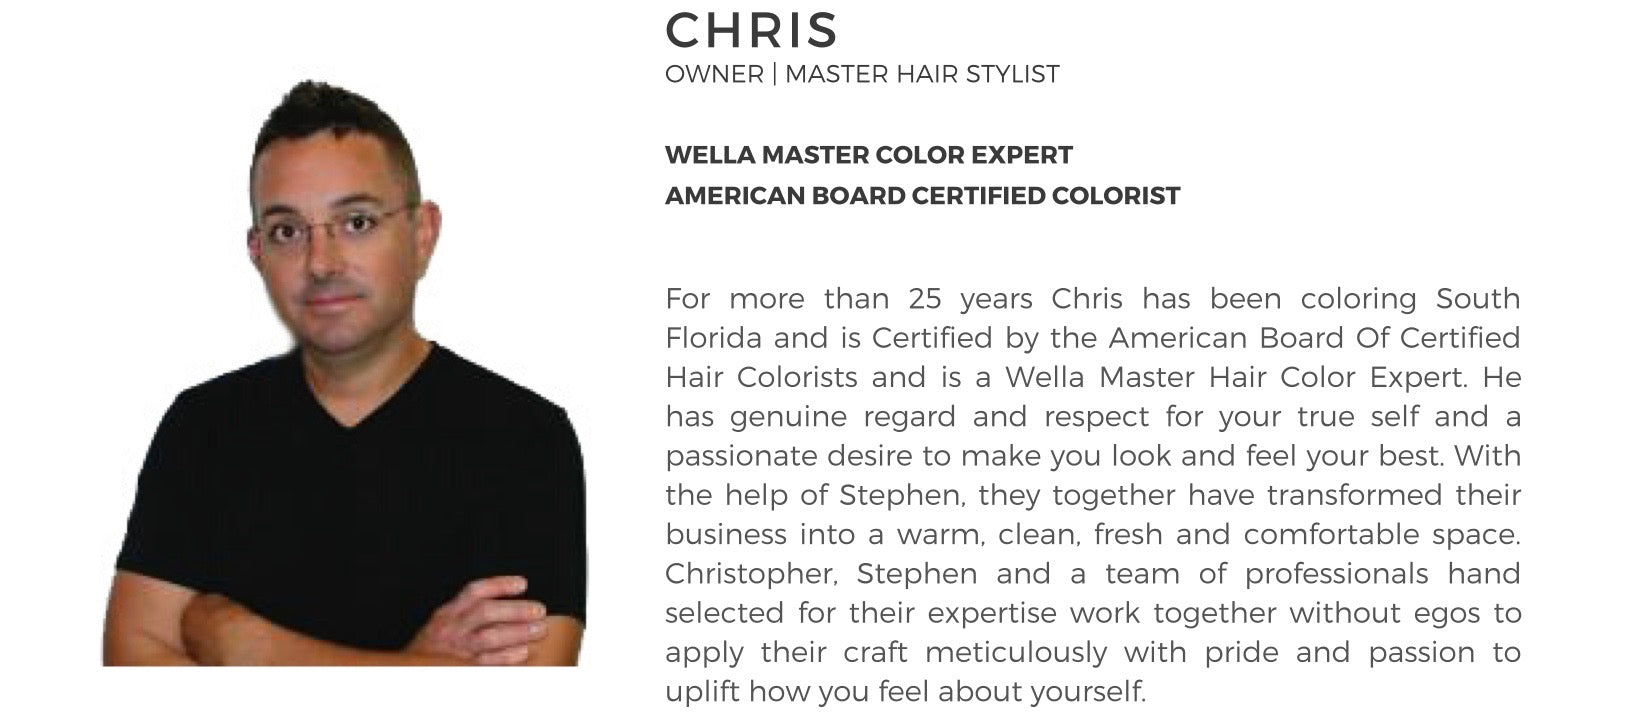 Board Certified Hair Colorist